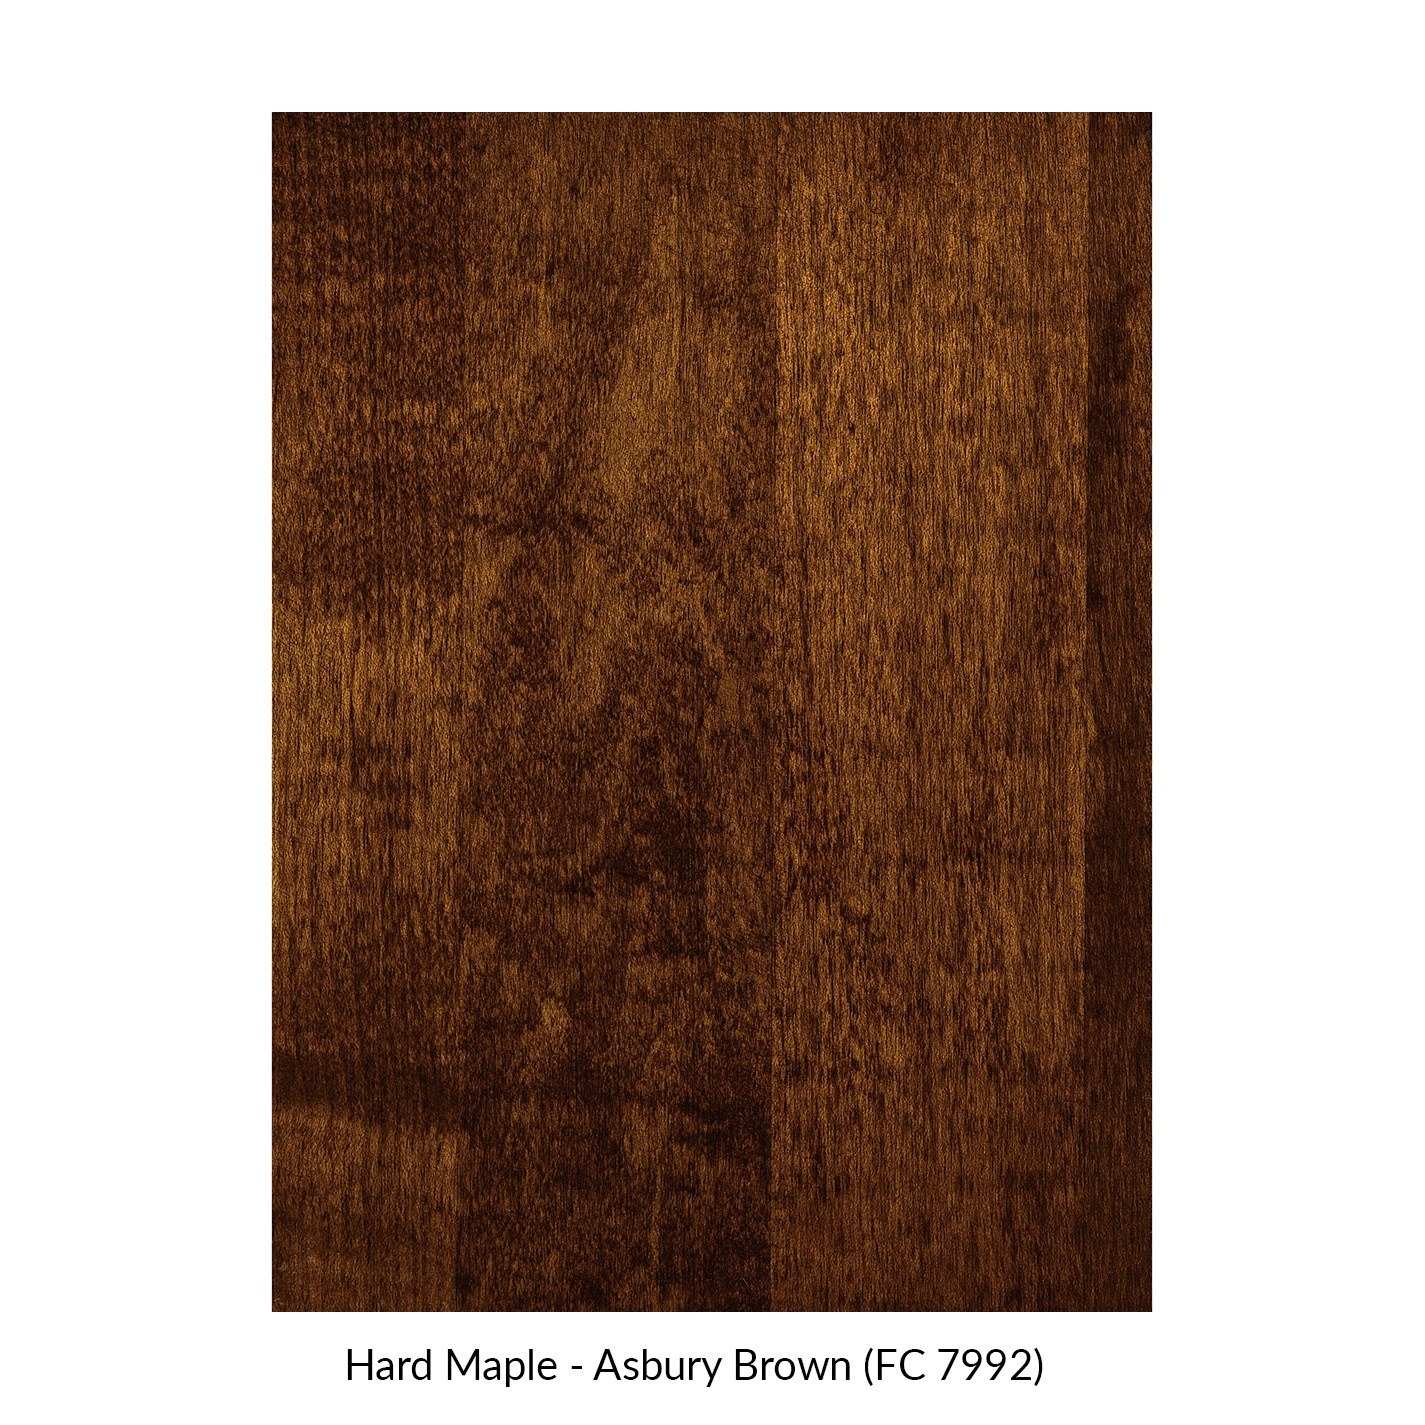 spectrum-hard-maple-asbury-brown-fc-7992.jpg